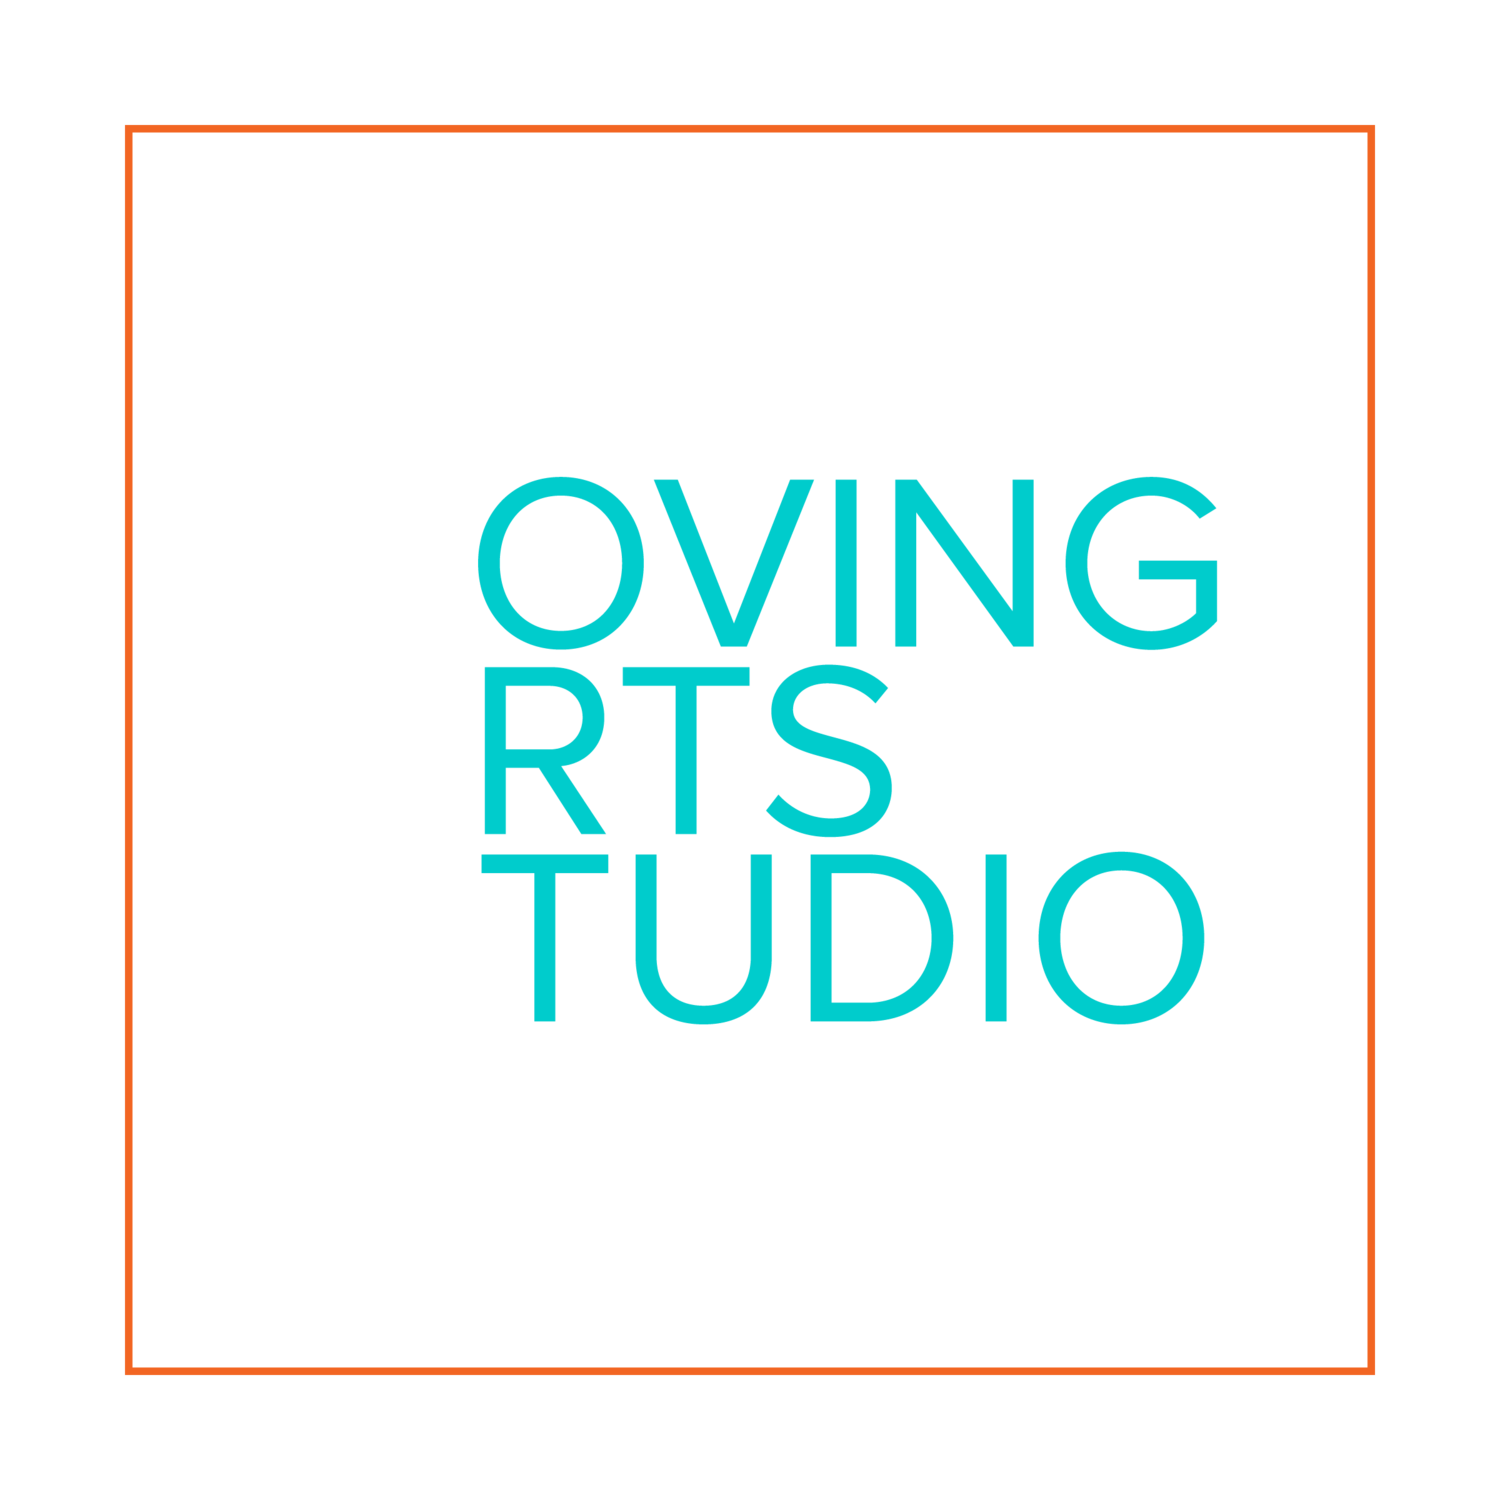 Moving Arts Studio